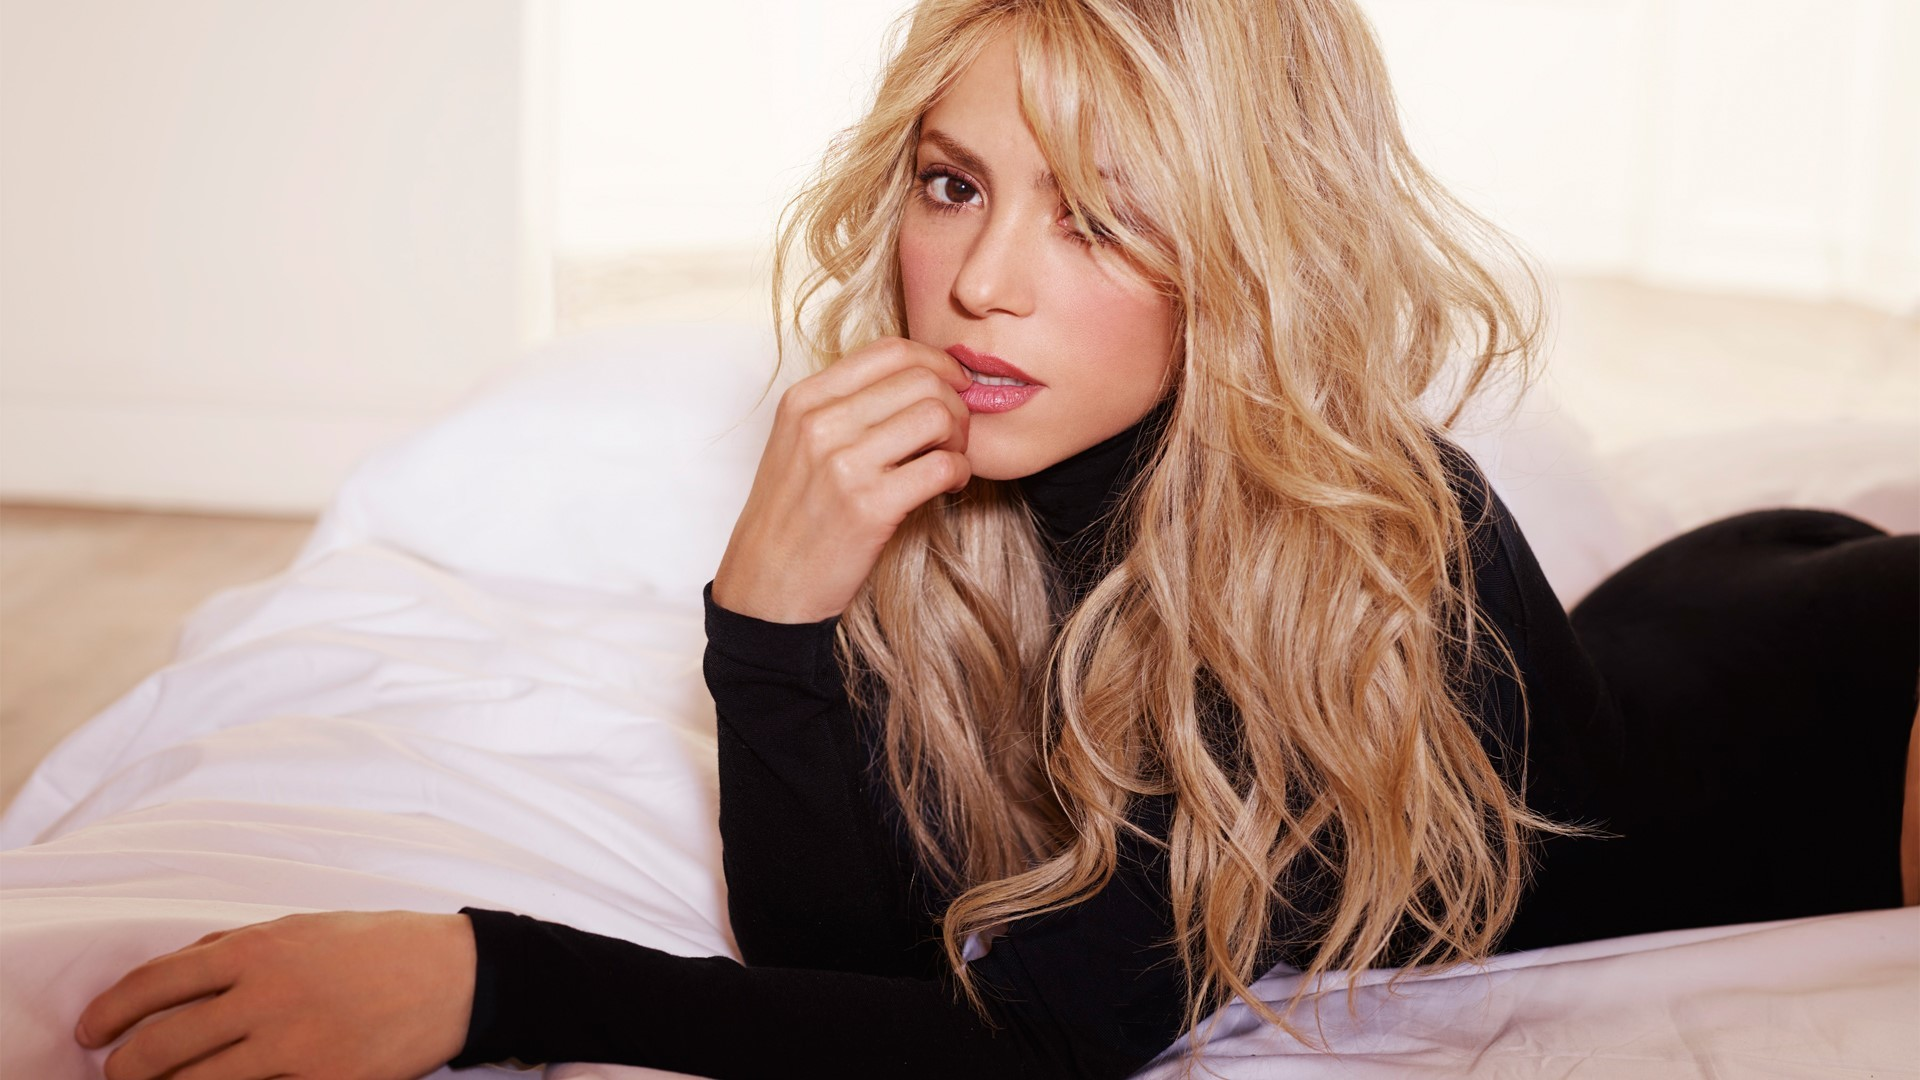 Shakira Hd Wallpaper 71 Images